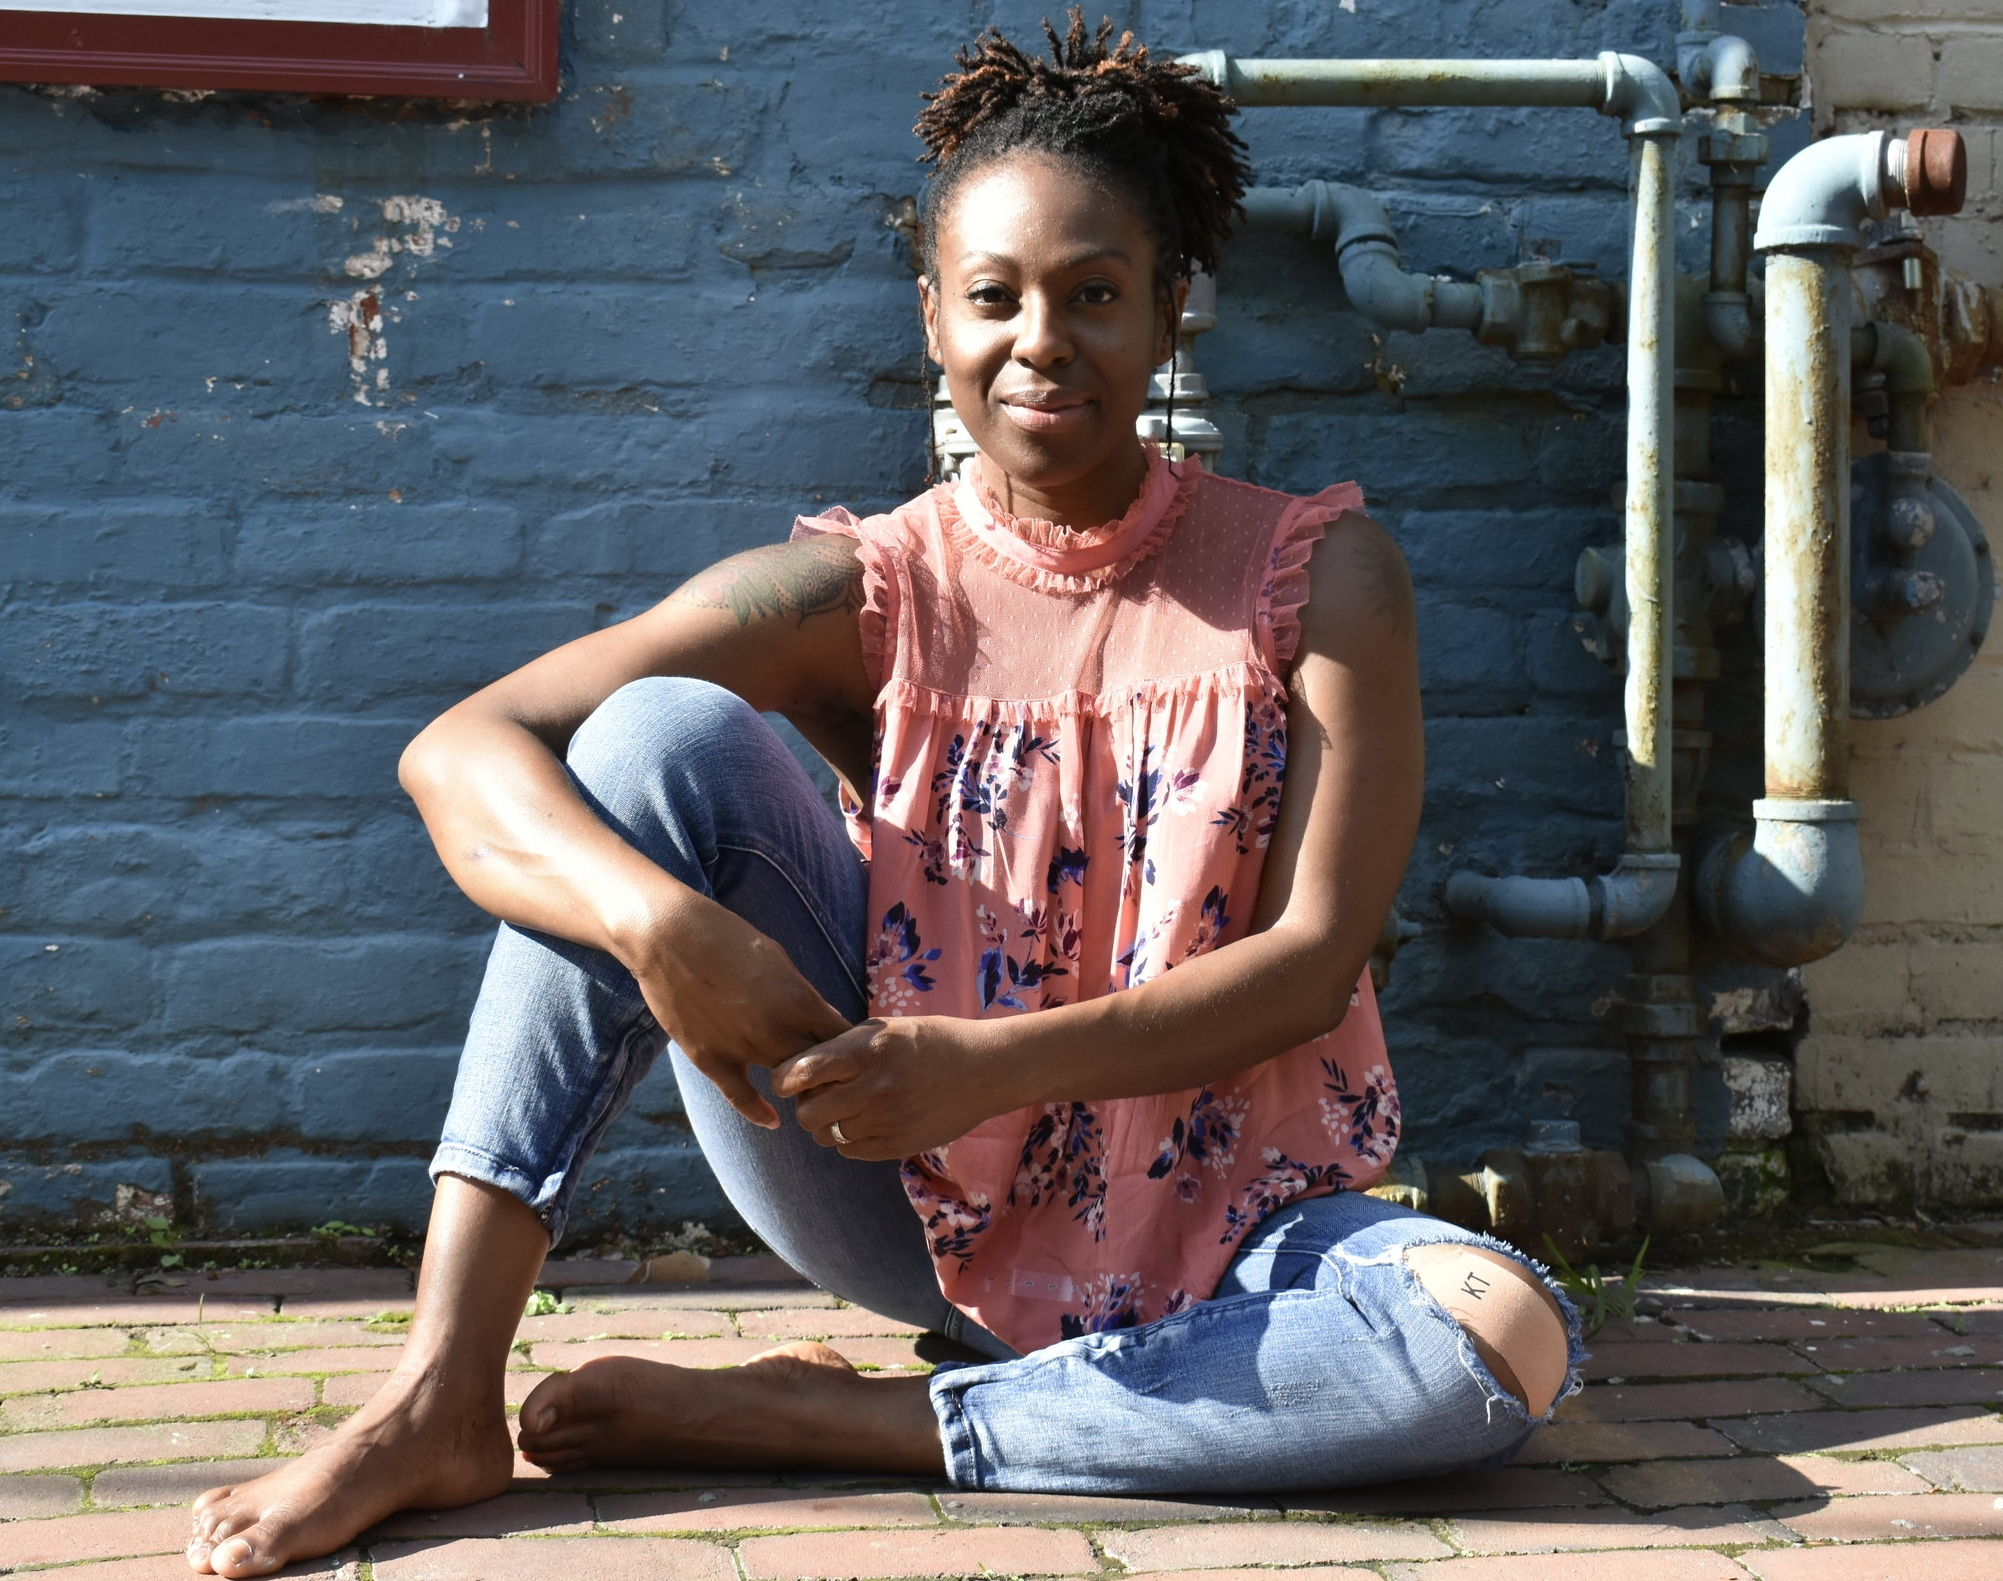 Hi! My name is Niecia. - I am an RYT-200 certified Yoga Instructor, though I prefer to think of myself as more of a Yoga Guide. I offer yoga guidance in workshop, private and corporate settings in Northern Virginia and the Washington DC Metro area.Book a session with Joaquin ➝